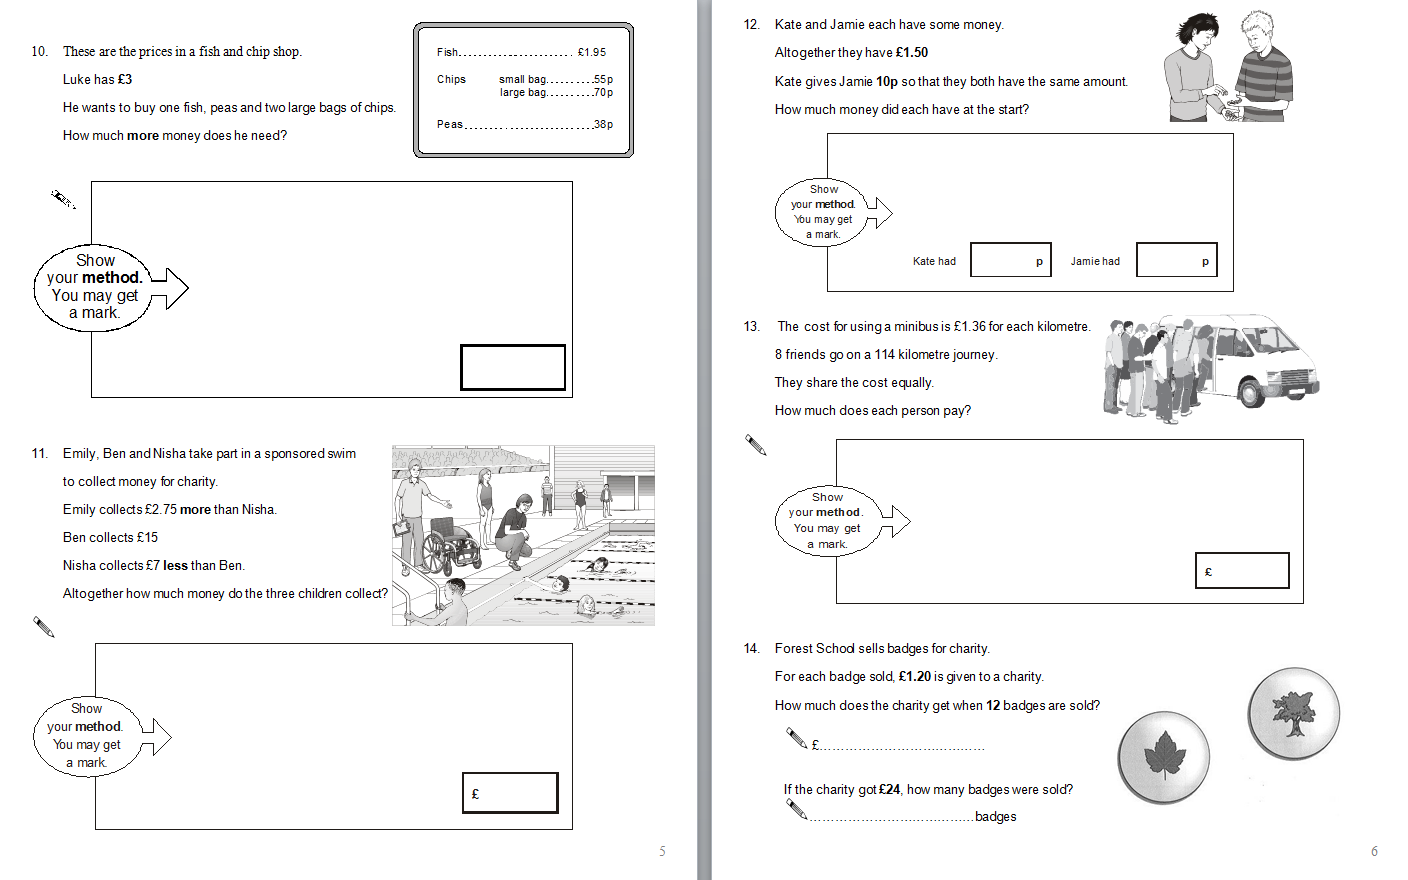 sats papers ks2 help Schoolexamscouk - maths past papers with question by question animated video solutions english material is unique written by former ks2, 11+ and gcse examiners.